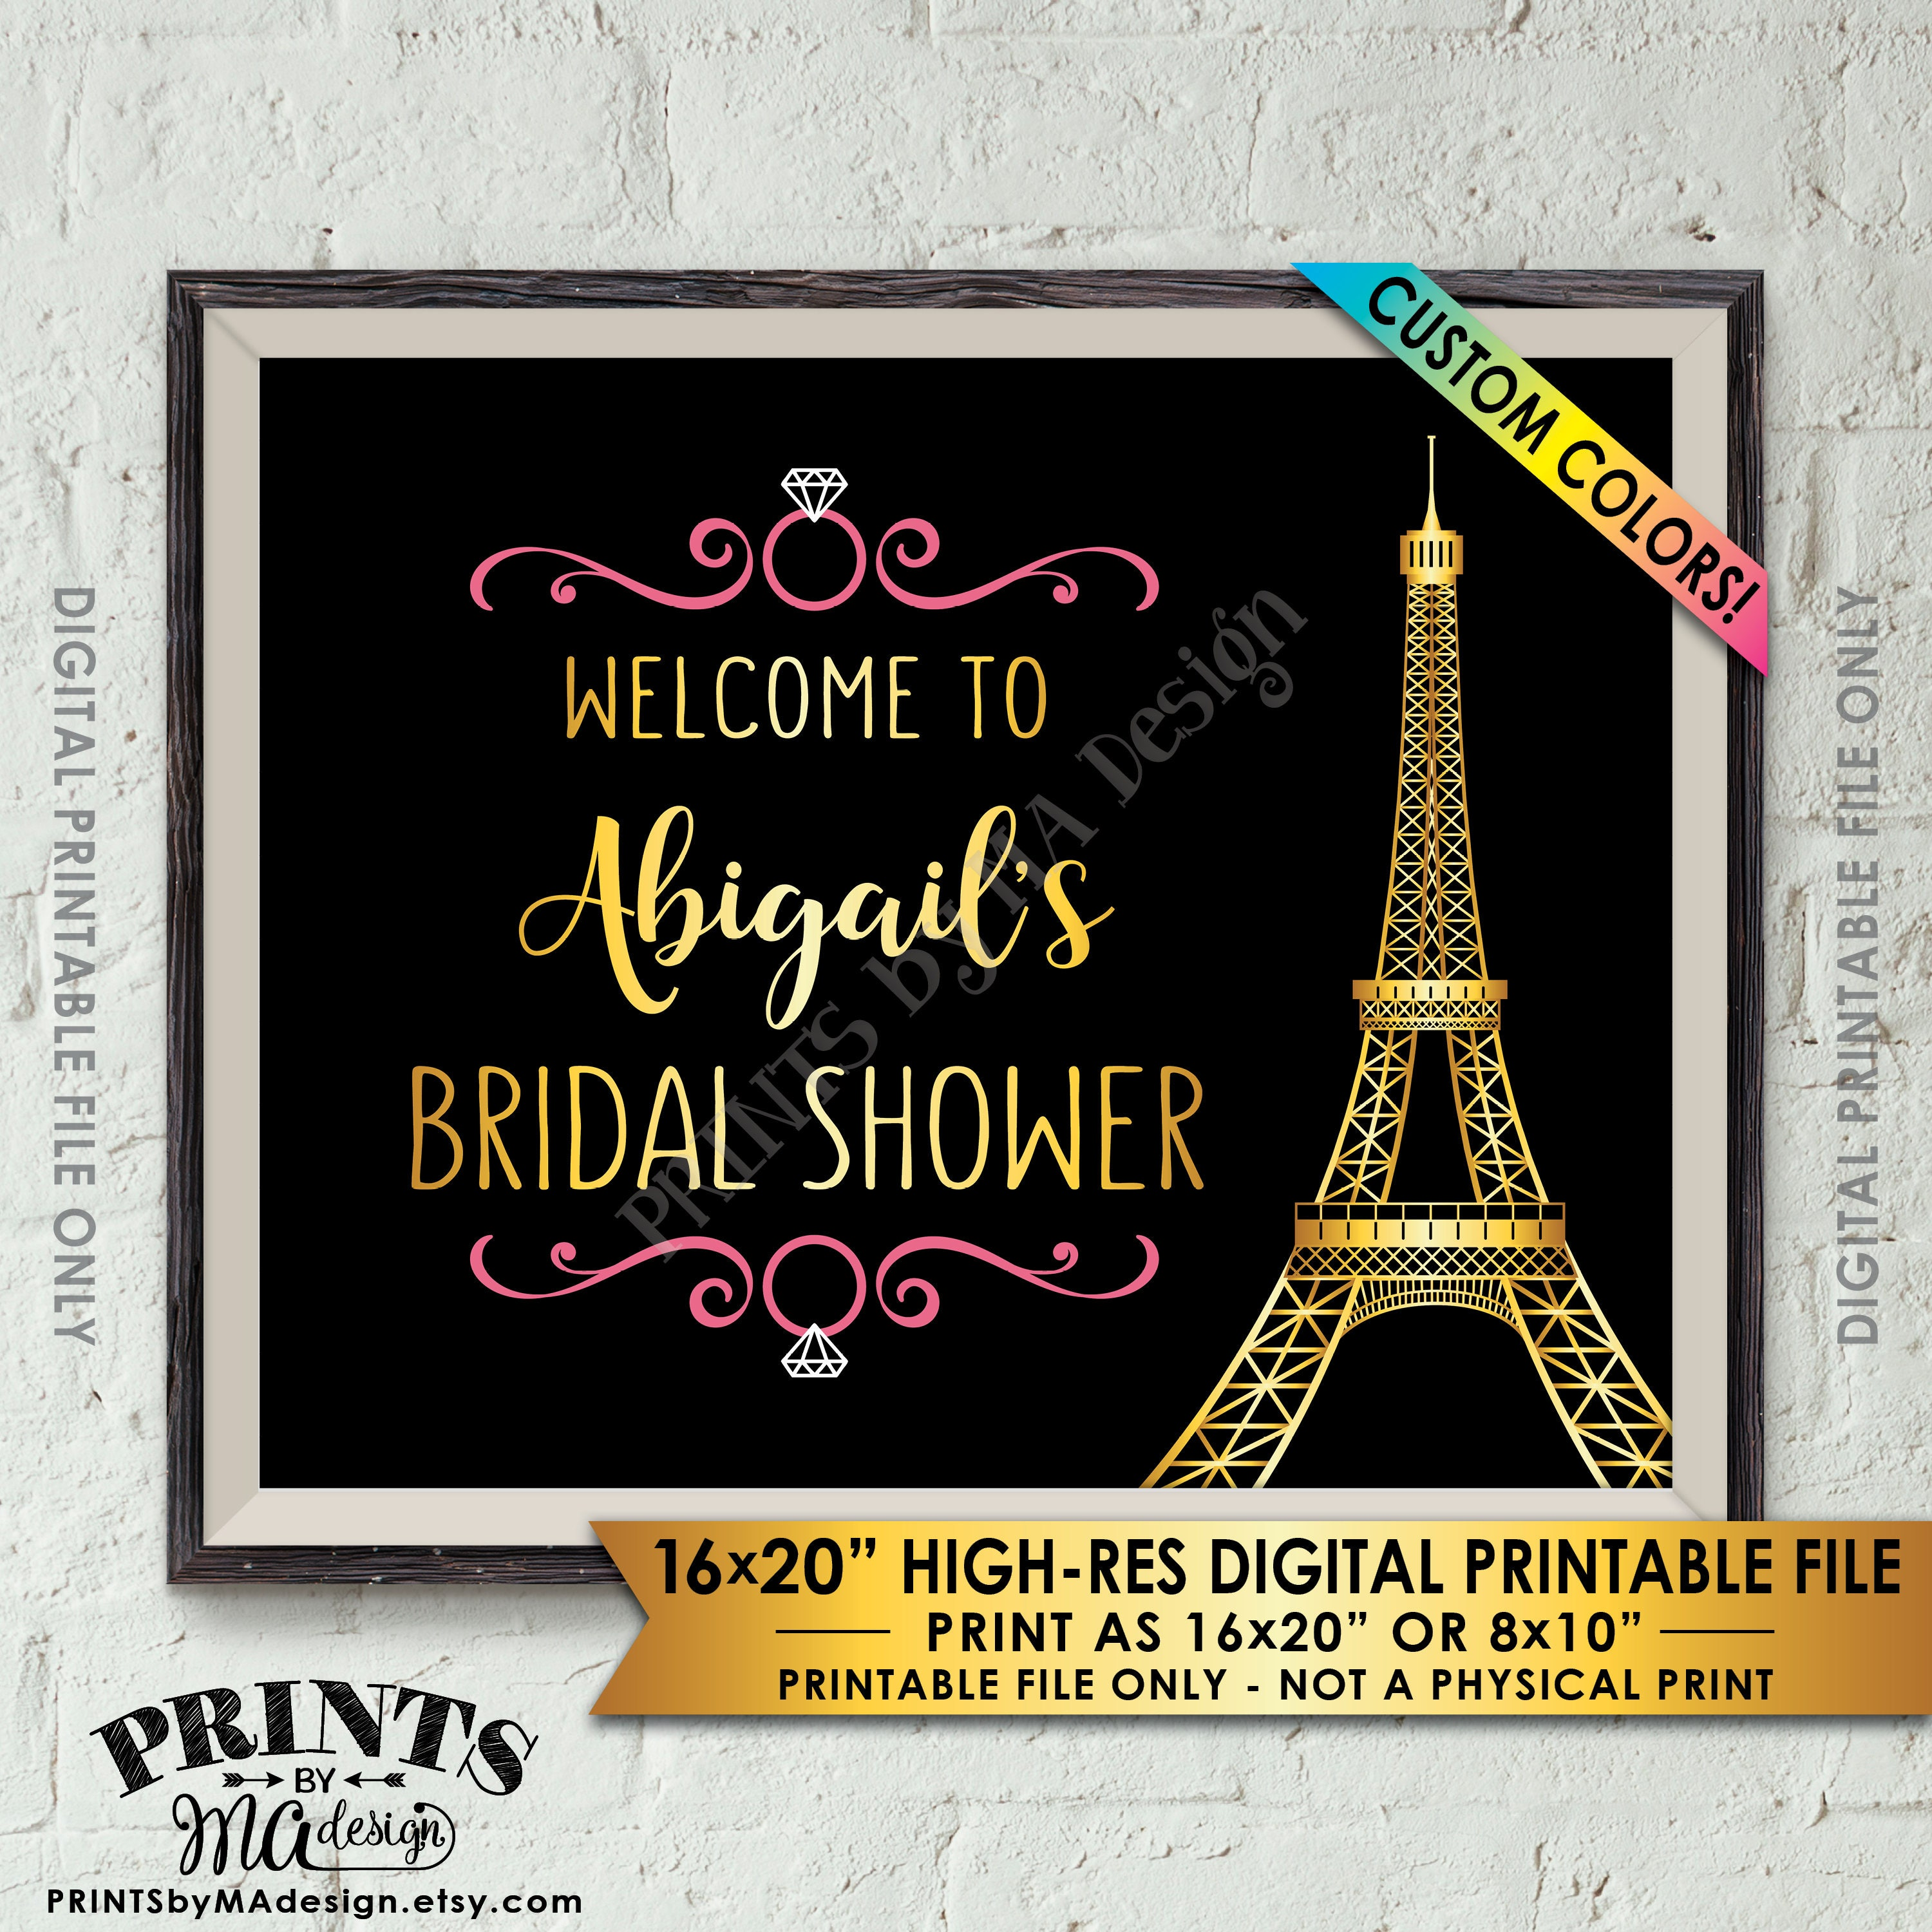 bridal shower welcome sign paris themed bridal shower paris wedding paris shower decoration 8x1016x20 printable custom color black